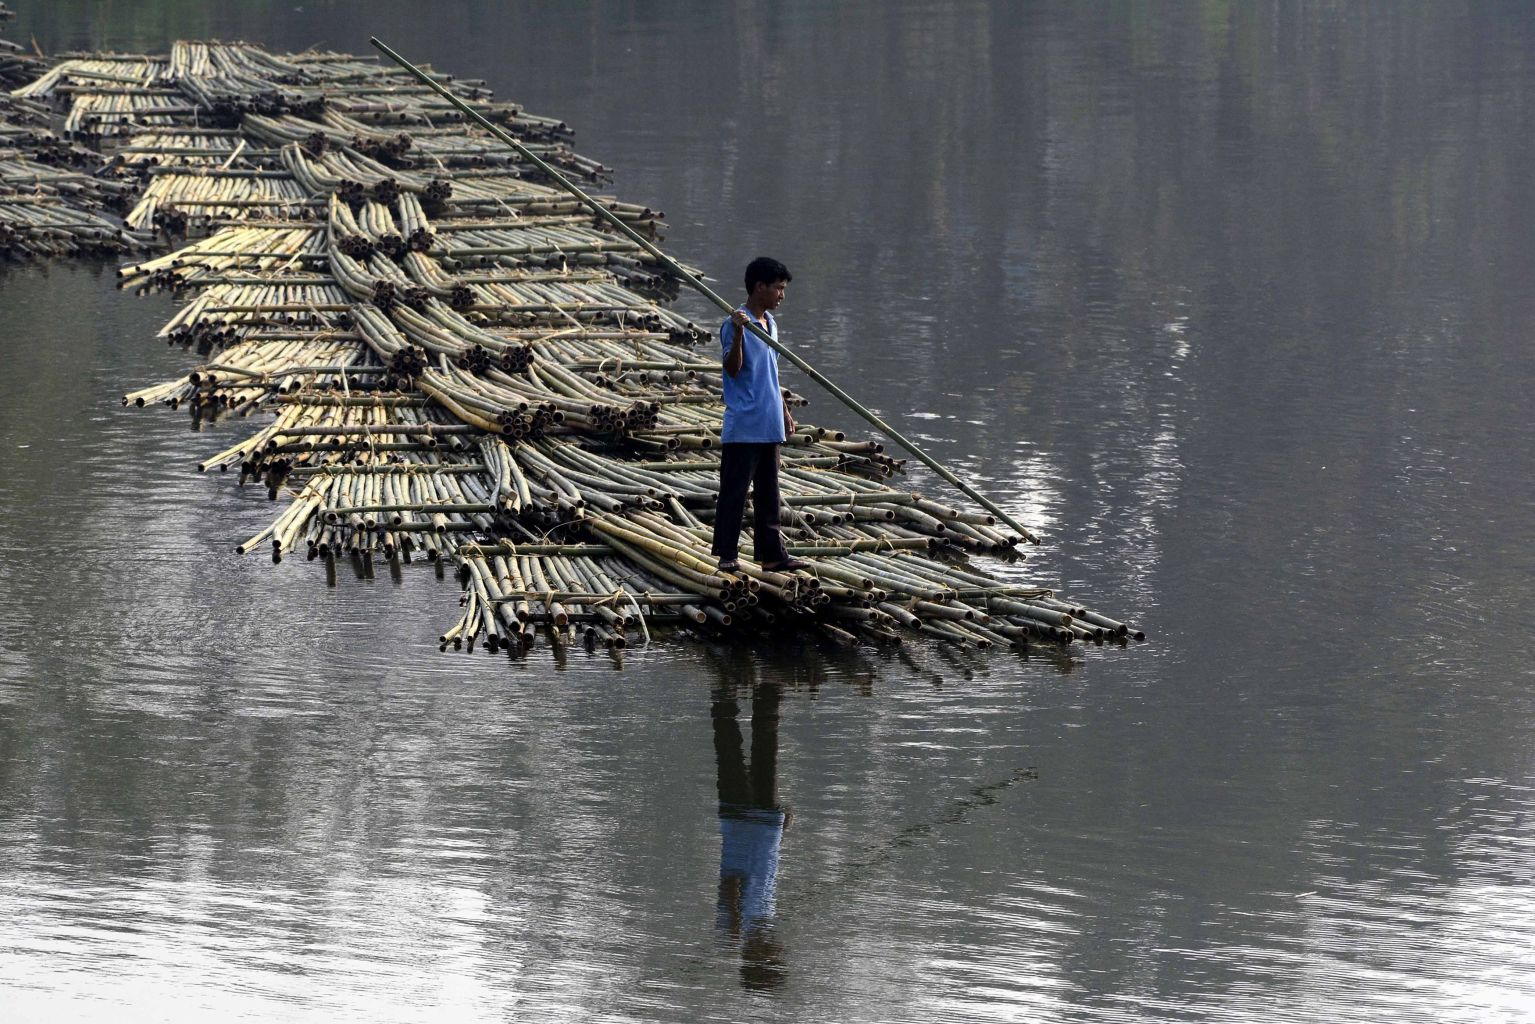 TOPSHOT - An Indian labourer pushes heaps of bamboo on a river to be sold at a floating market -- and set to be used in the construction industry -- in Chakmaghat, some 56km north of Agartala, the capital of northeastern state of Tripura, on March 22, 2018. / AFP PHOTO / Arindam DEY        (Photo credit should read ARINDAM DEY/AFP/Getty Images)